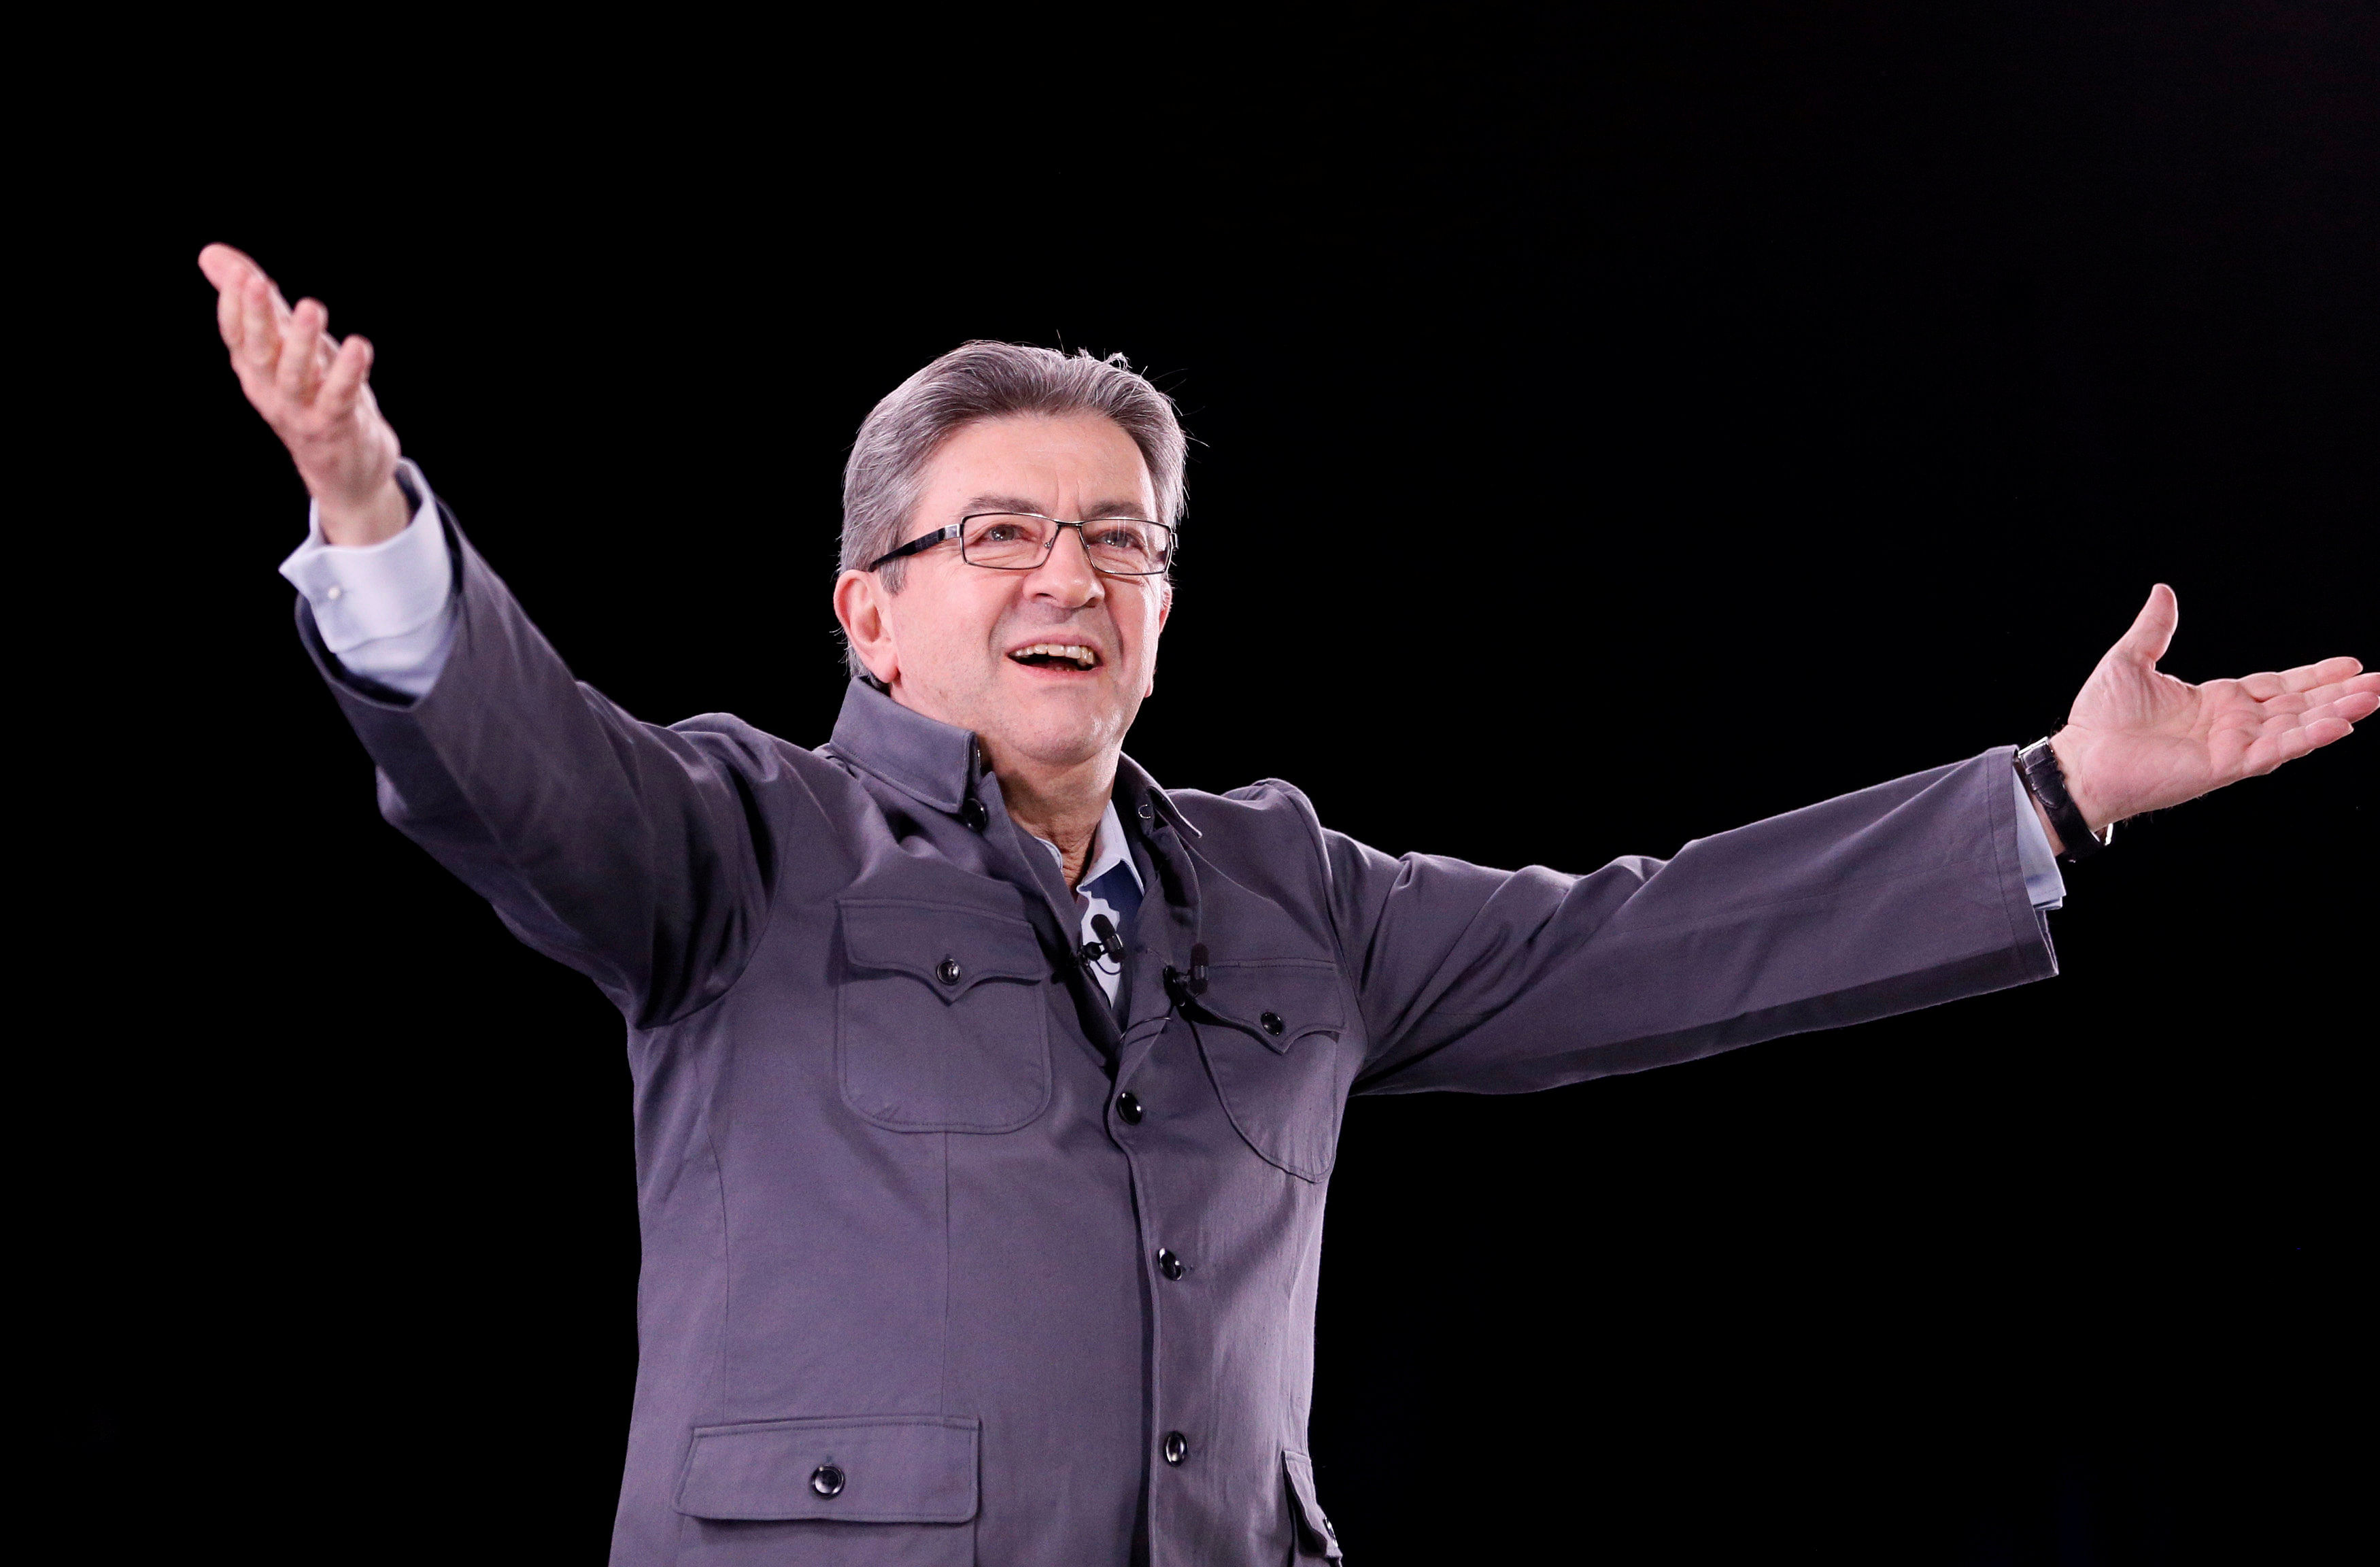 contract will jean melenchon finish first round french presidential election